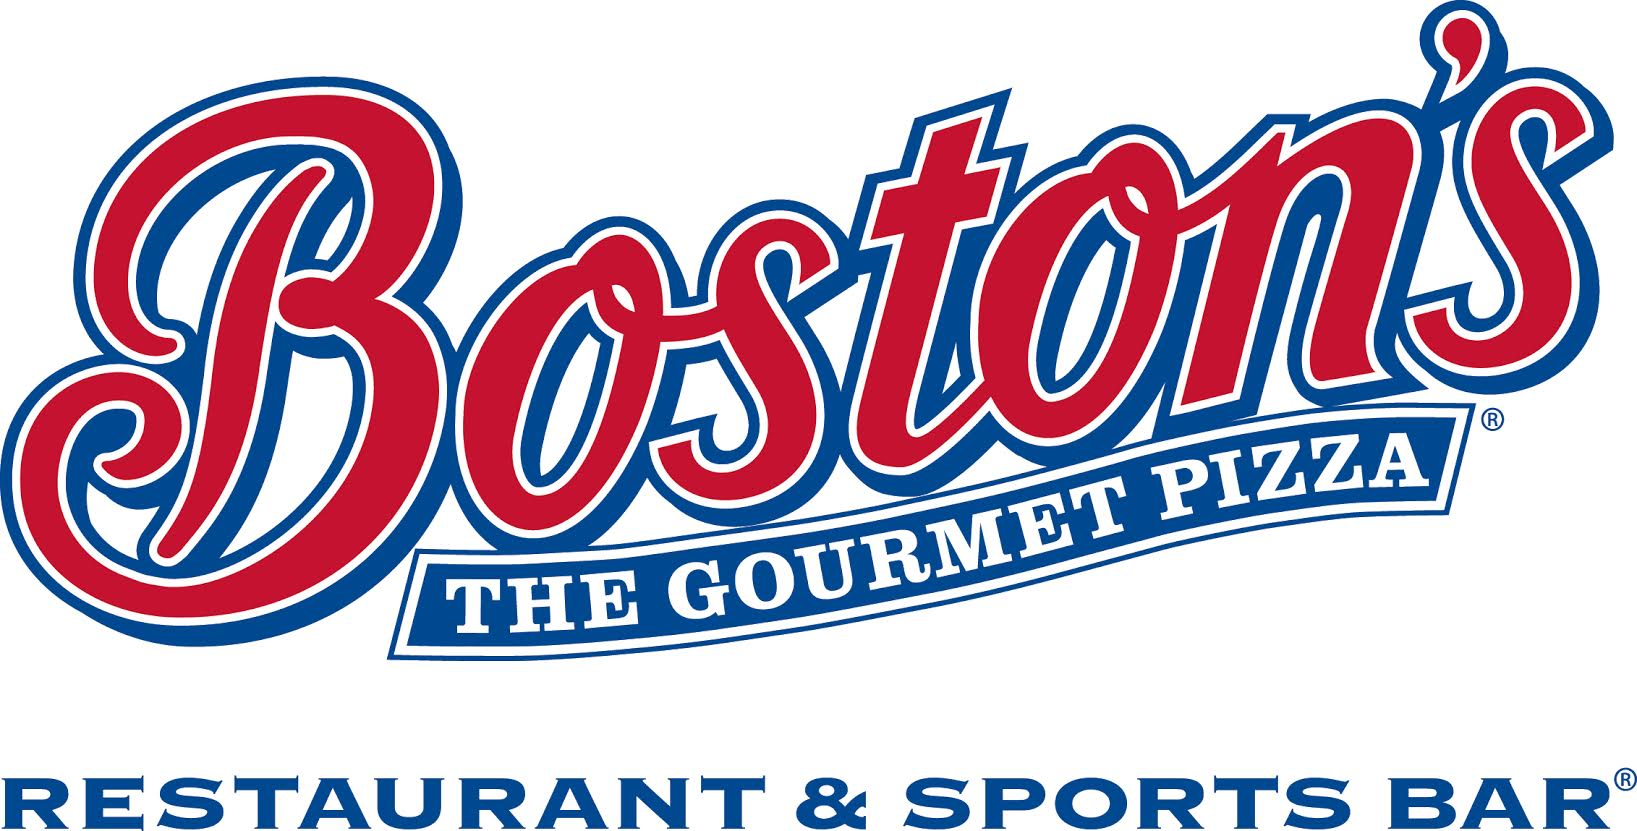 Boston's Restaurant & Sports Bar